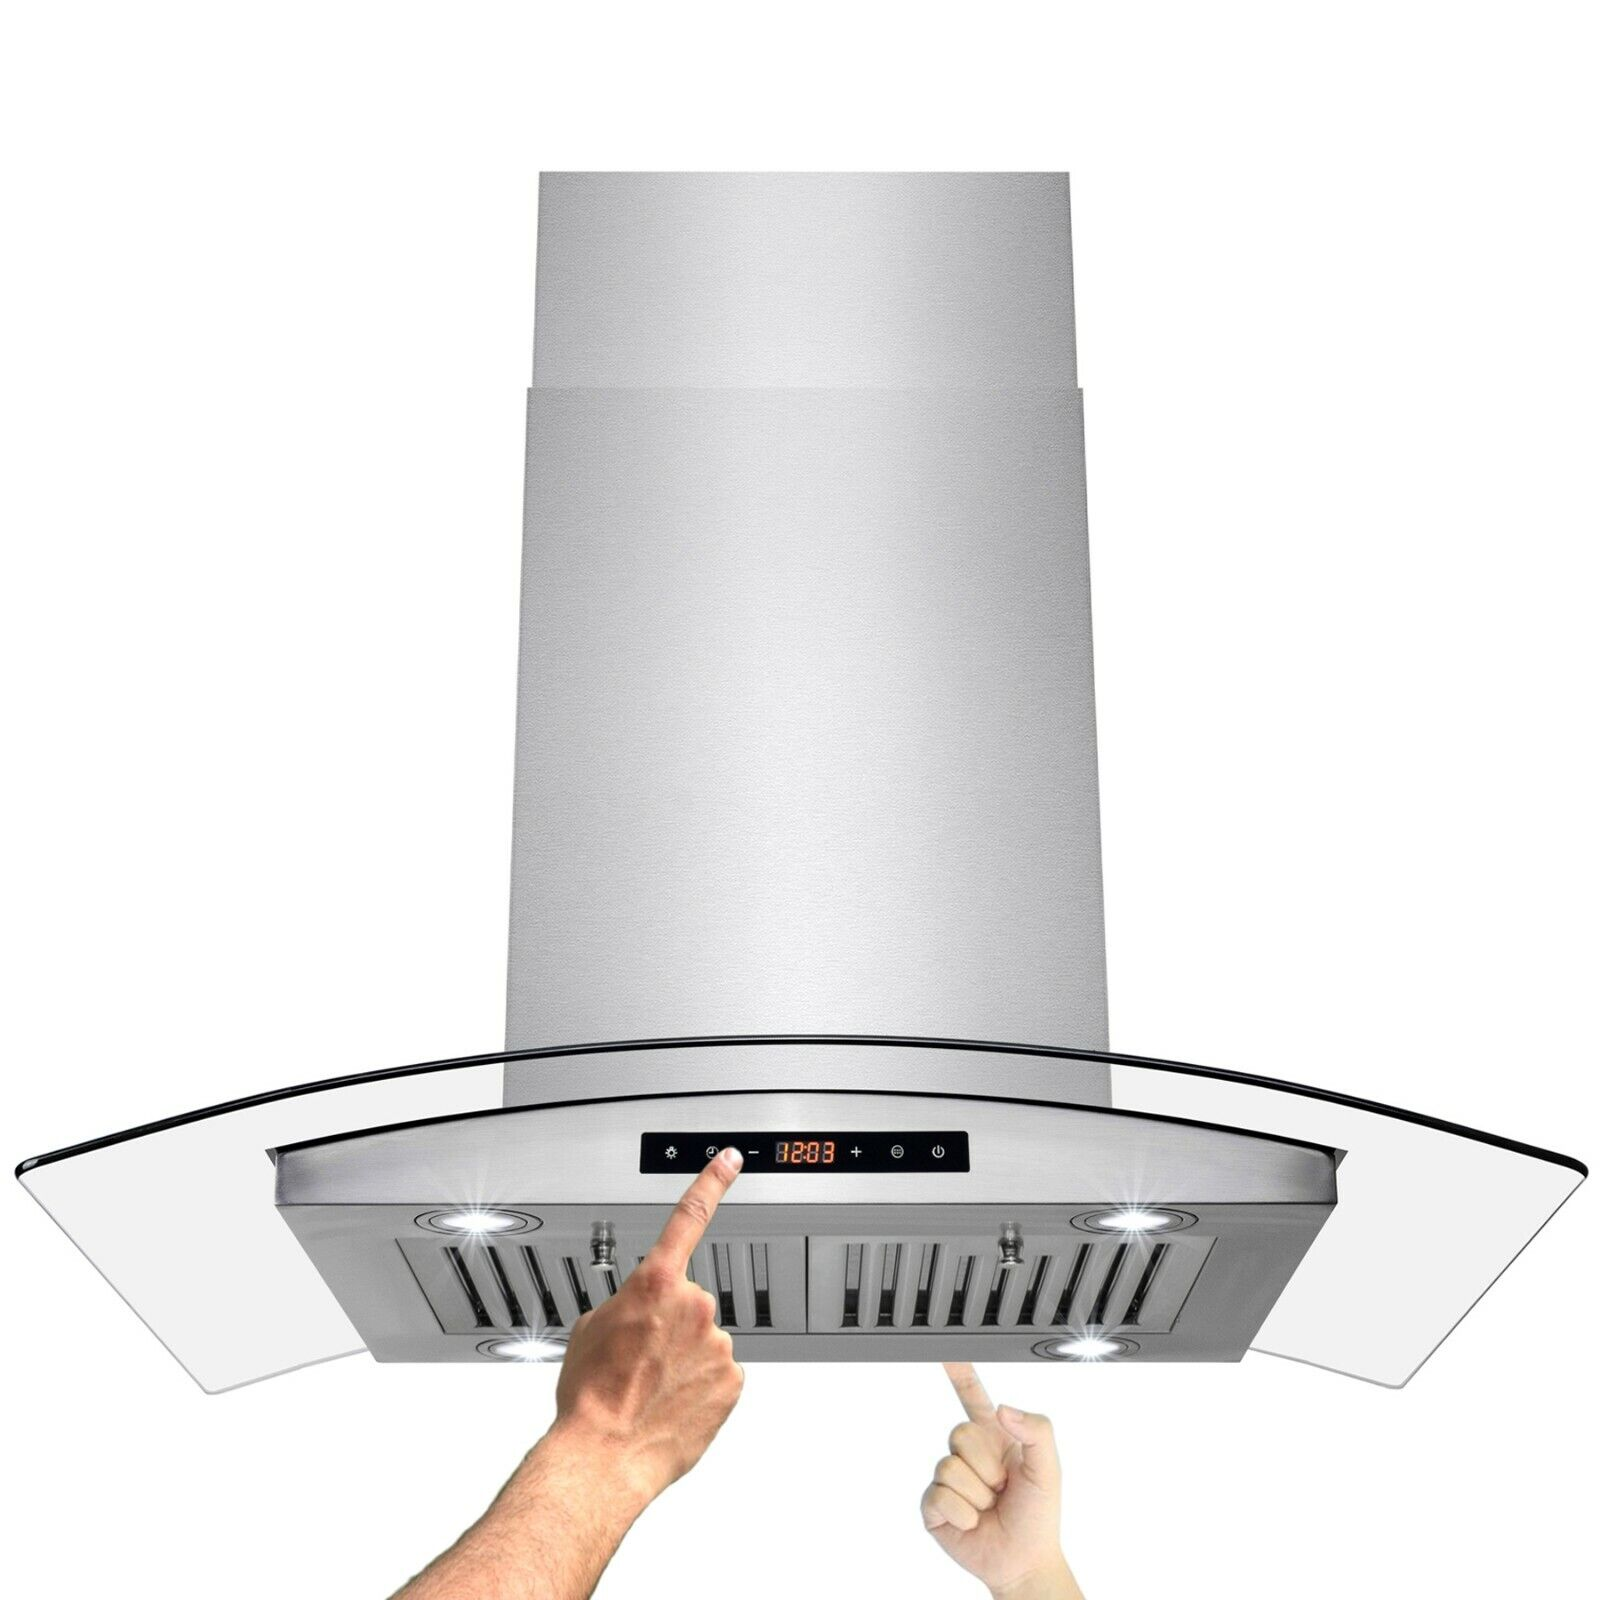 36-island-mount-stainless-steel-dual-touch-panel-kitchen-range-hood-cooking-fan